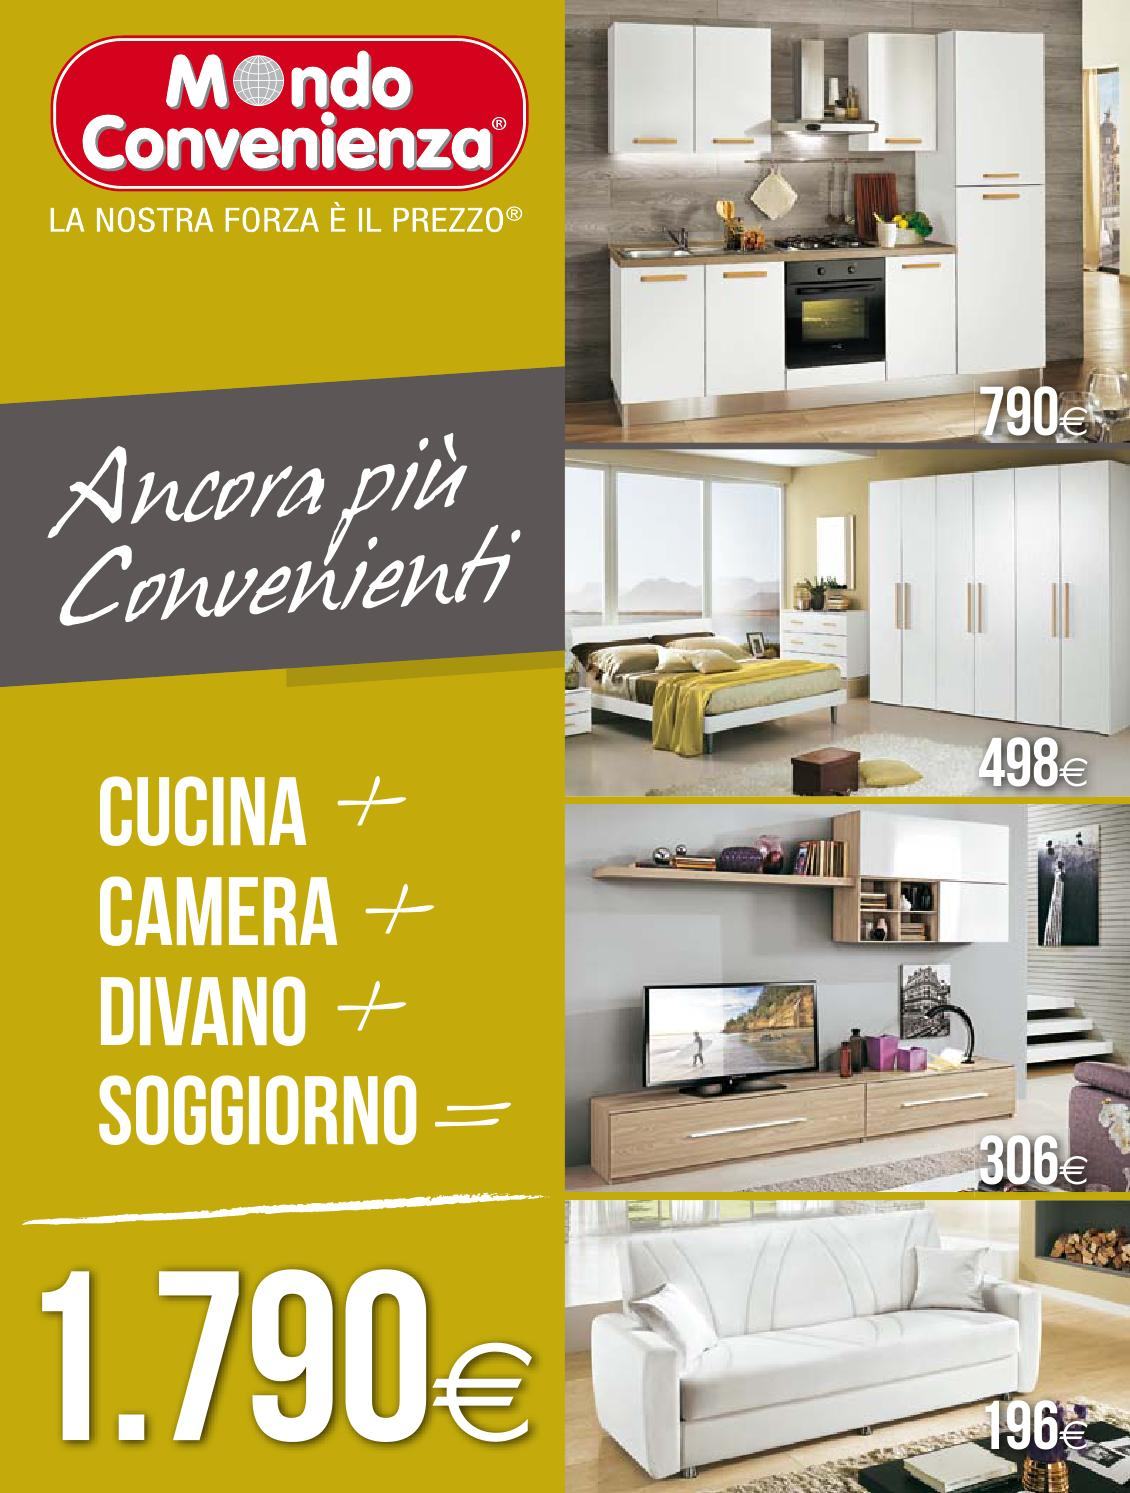 mondo convenienza catalogo autunno2014 by mobilpro - issuu - Mondo Convenienza Offerte Mobili